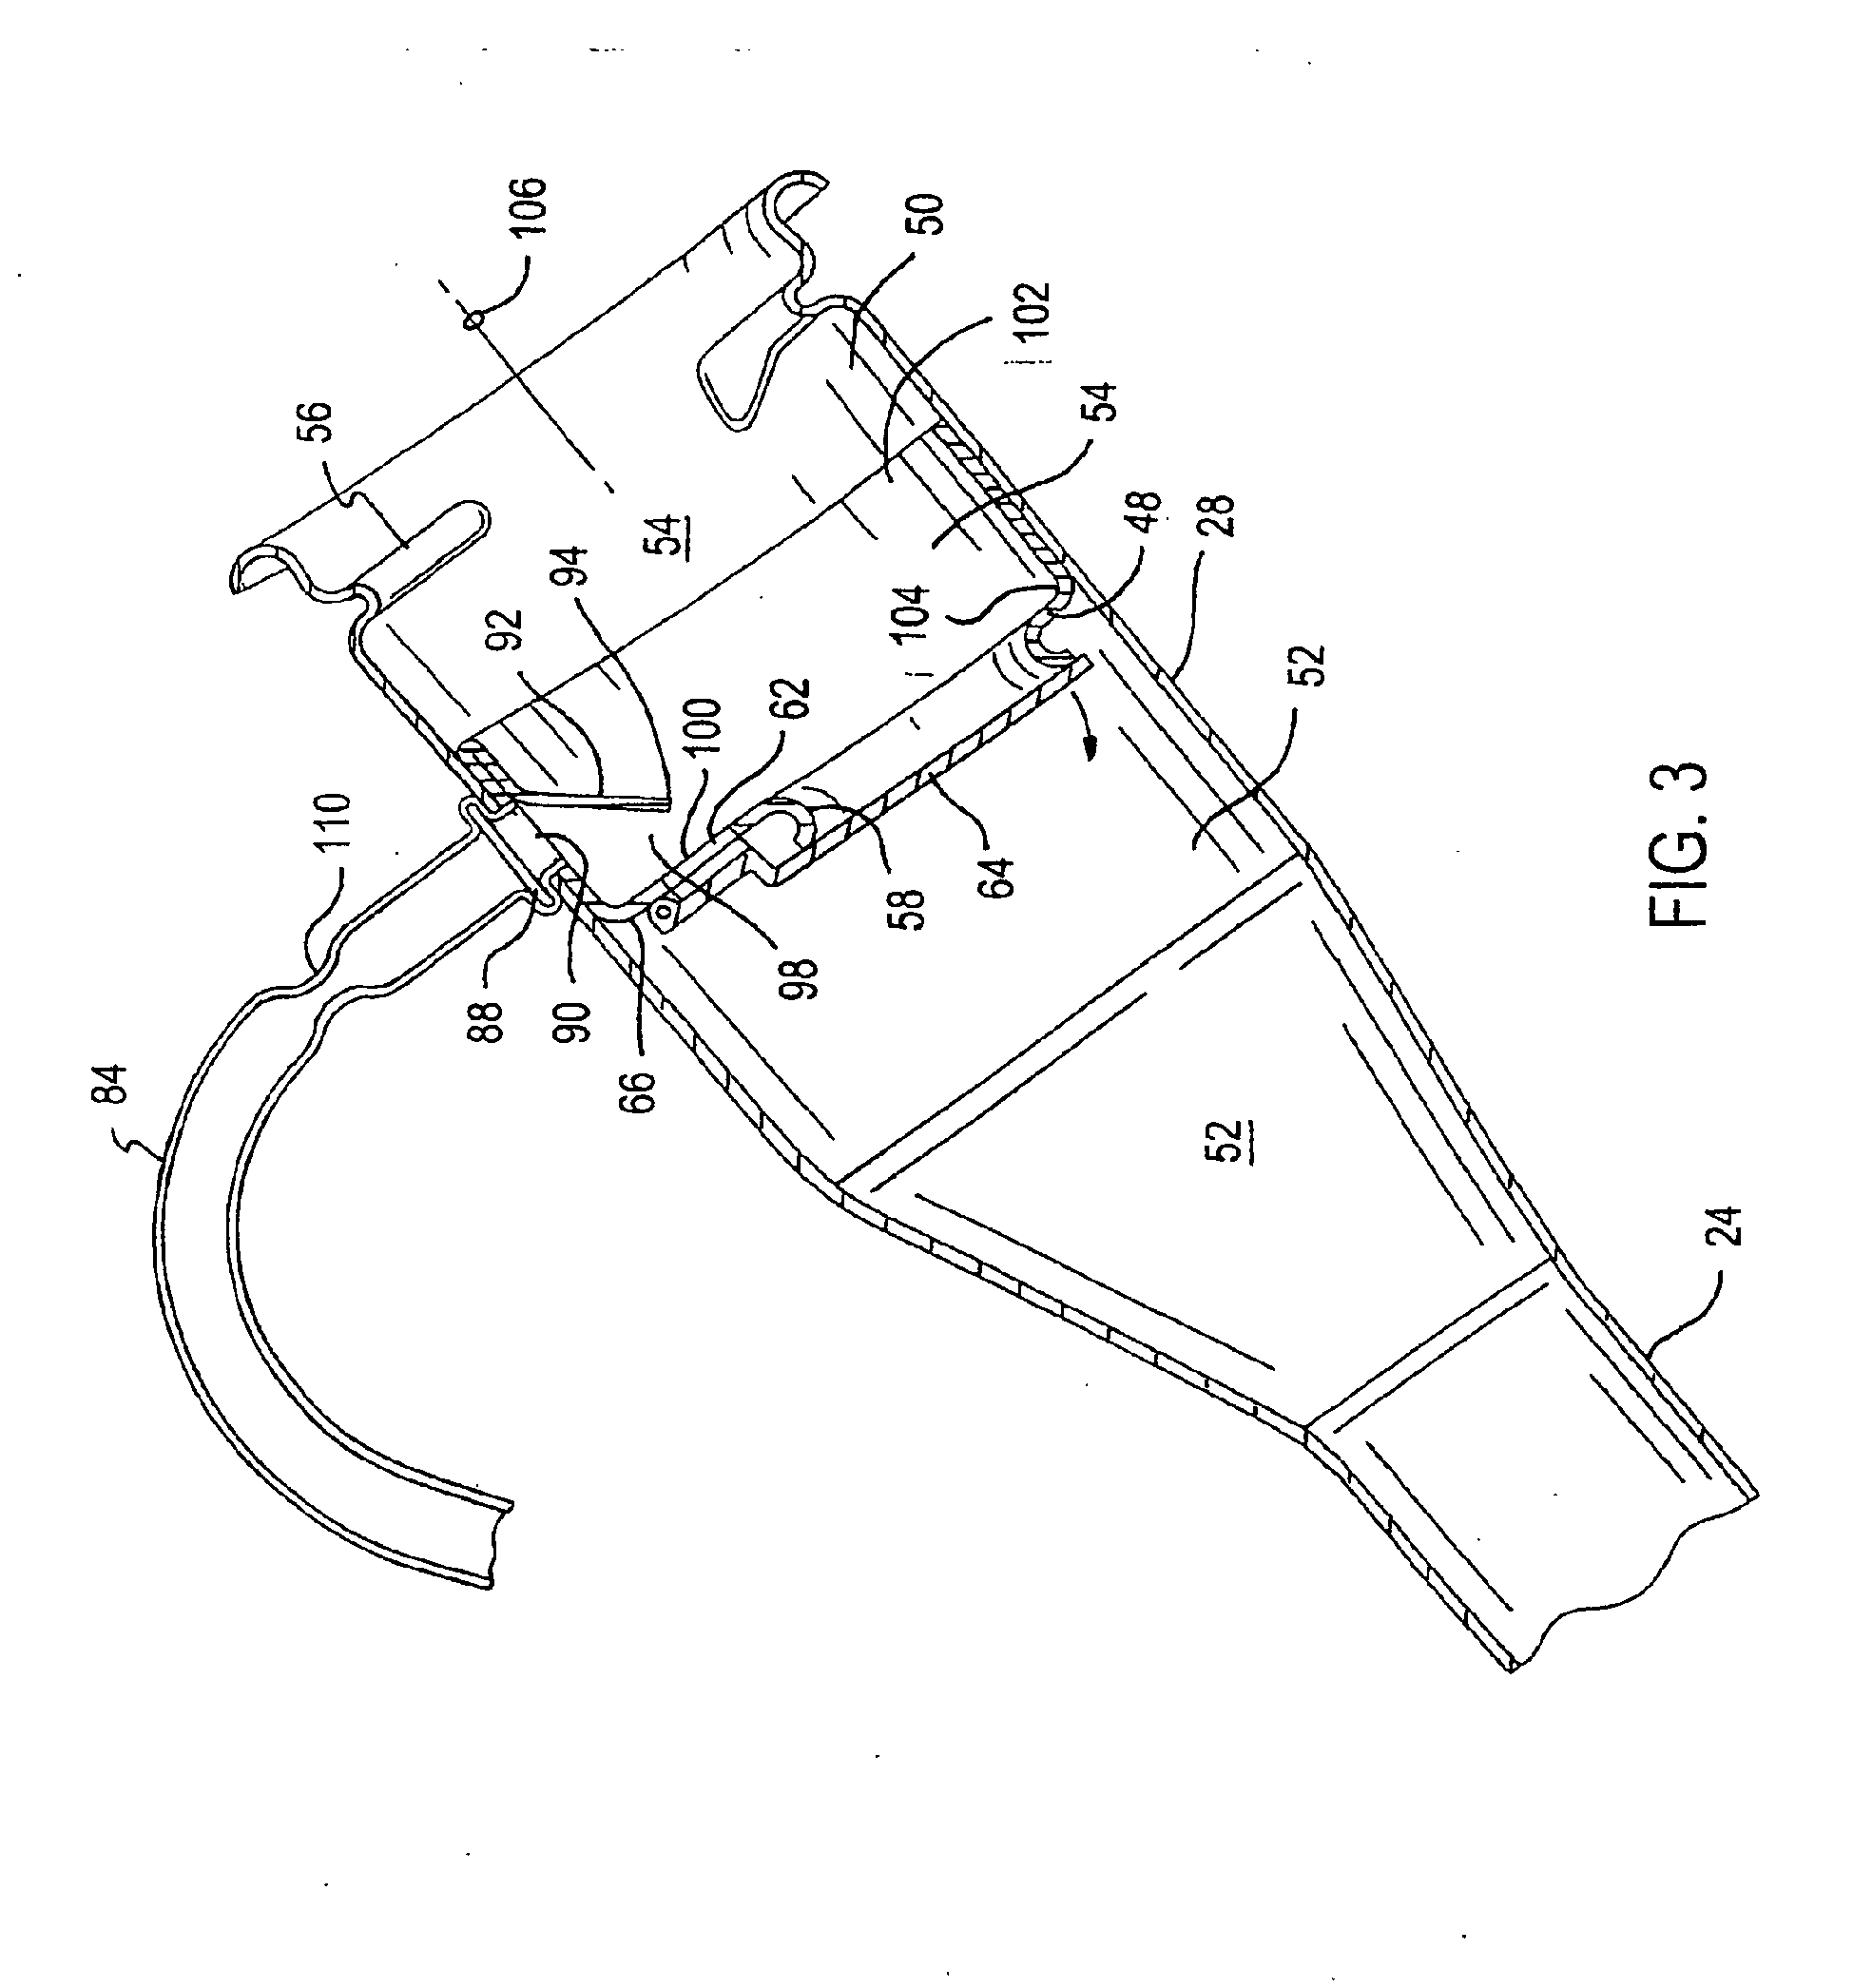 Patent Ep1600317b1 Refueling Vapor Recovery System